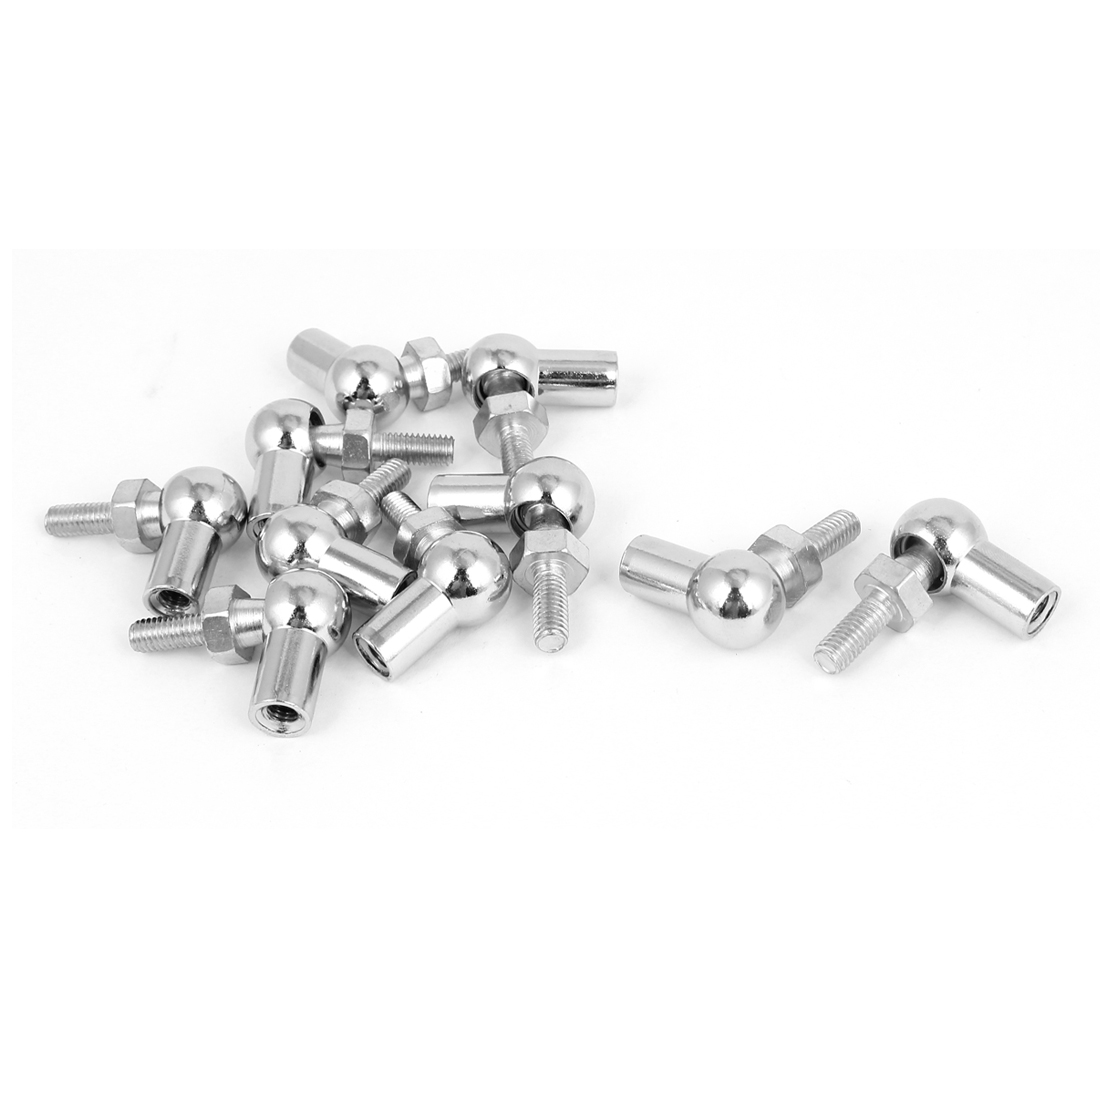 6mm x 6mm Male Female Thread L Shaped Ball Joint Rod End Bearing 10 Pcs